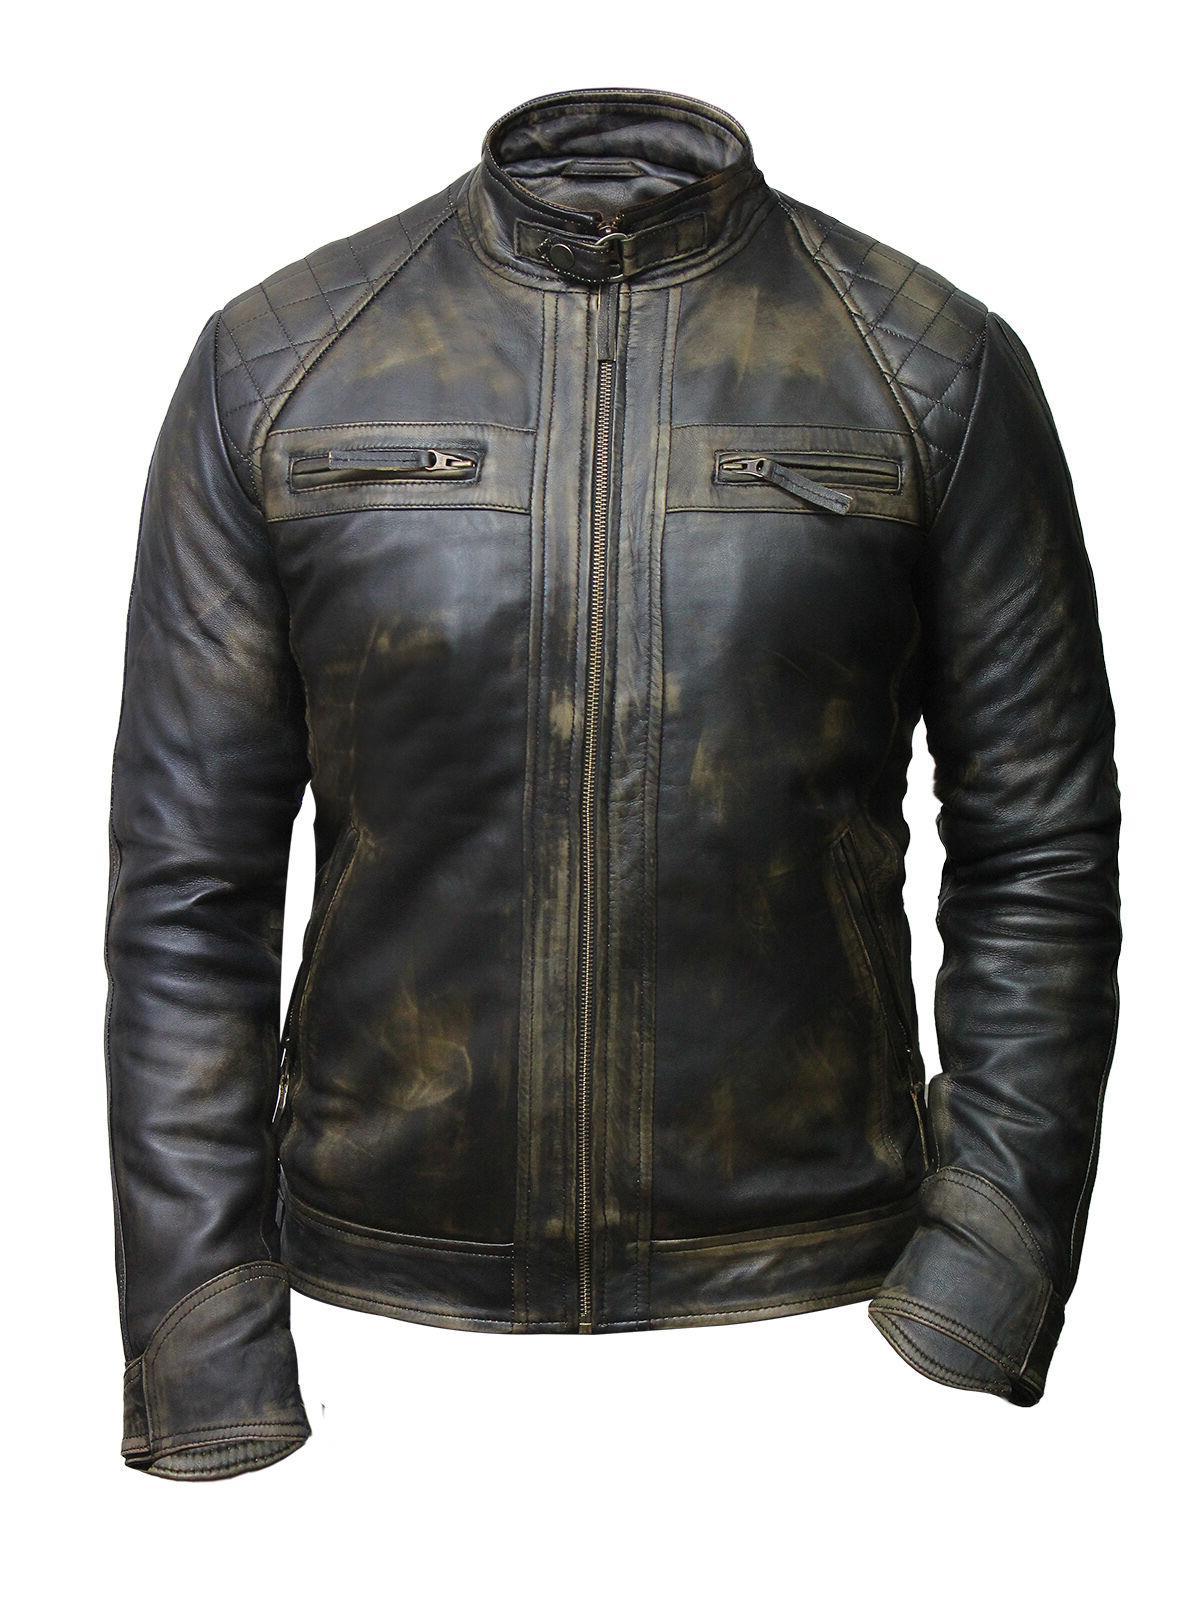 Men's Leather Biker Jacket Black 100% Real Wax Leather From